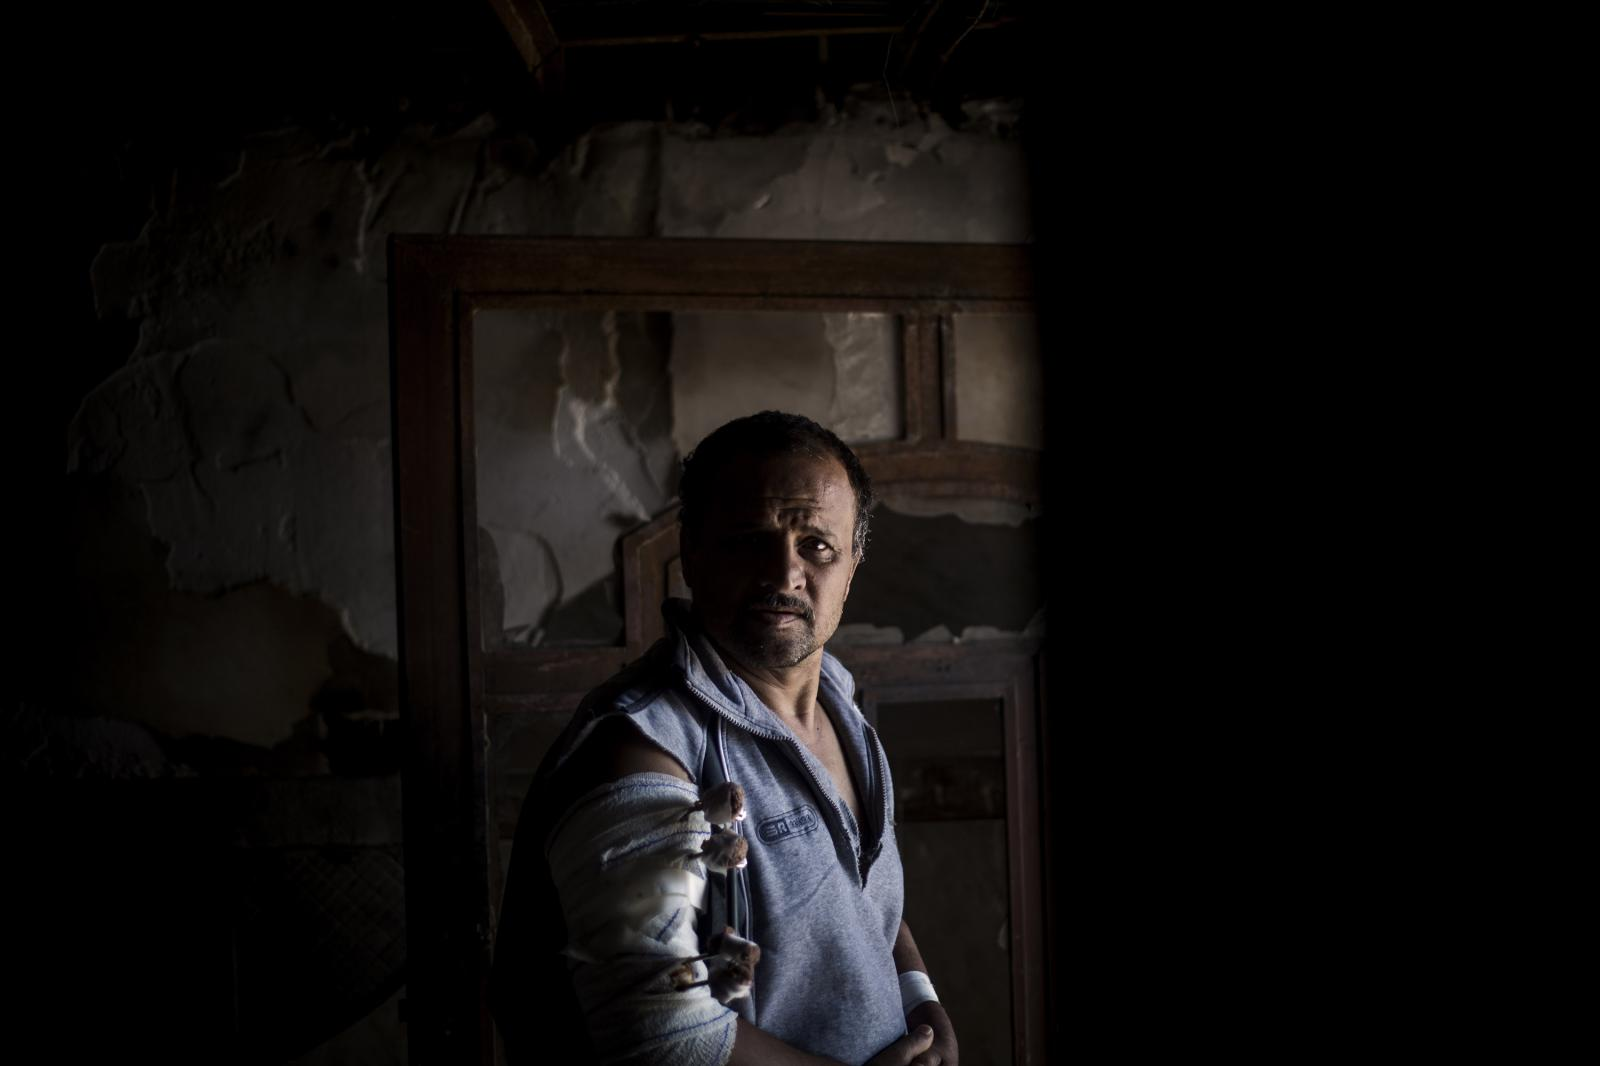 Portrait of Shamed Ashim, 51 years old. He is from West Mosul. He was injured on March 7th by a helicopter fire. Hamdaniya, Iraq 2017. Diego Ibarra Sánchez for MSF